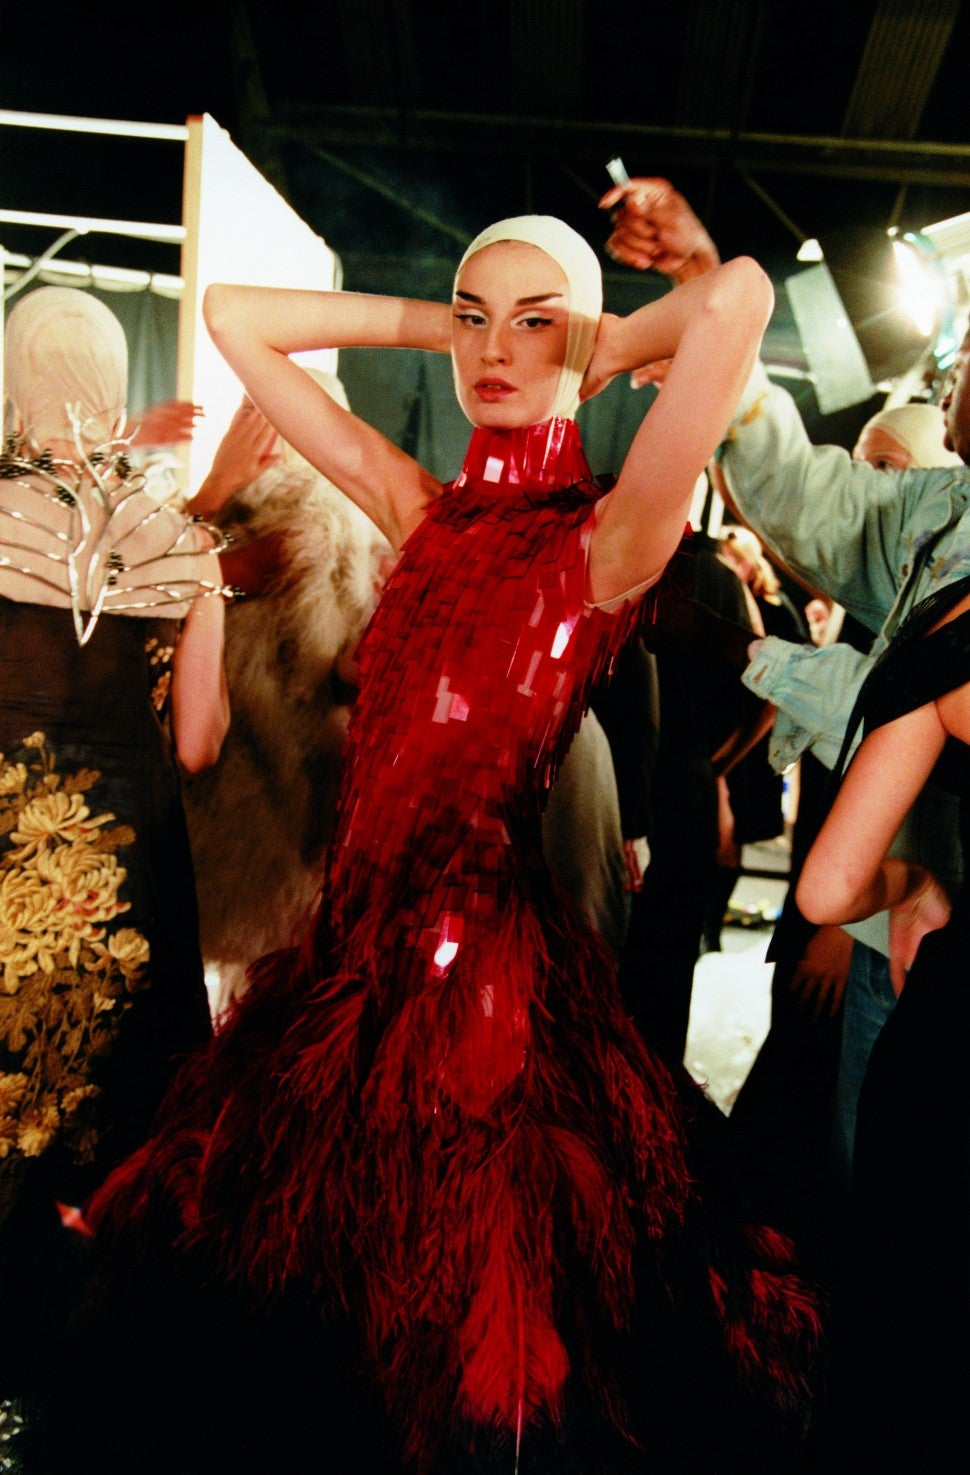 Alexander McQueen Spring/Summer 2001 Voss Show red dress